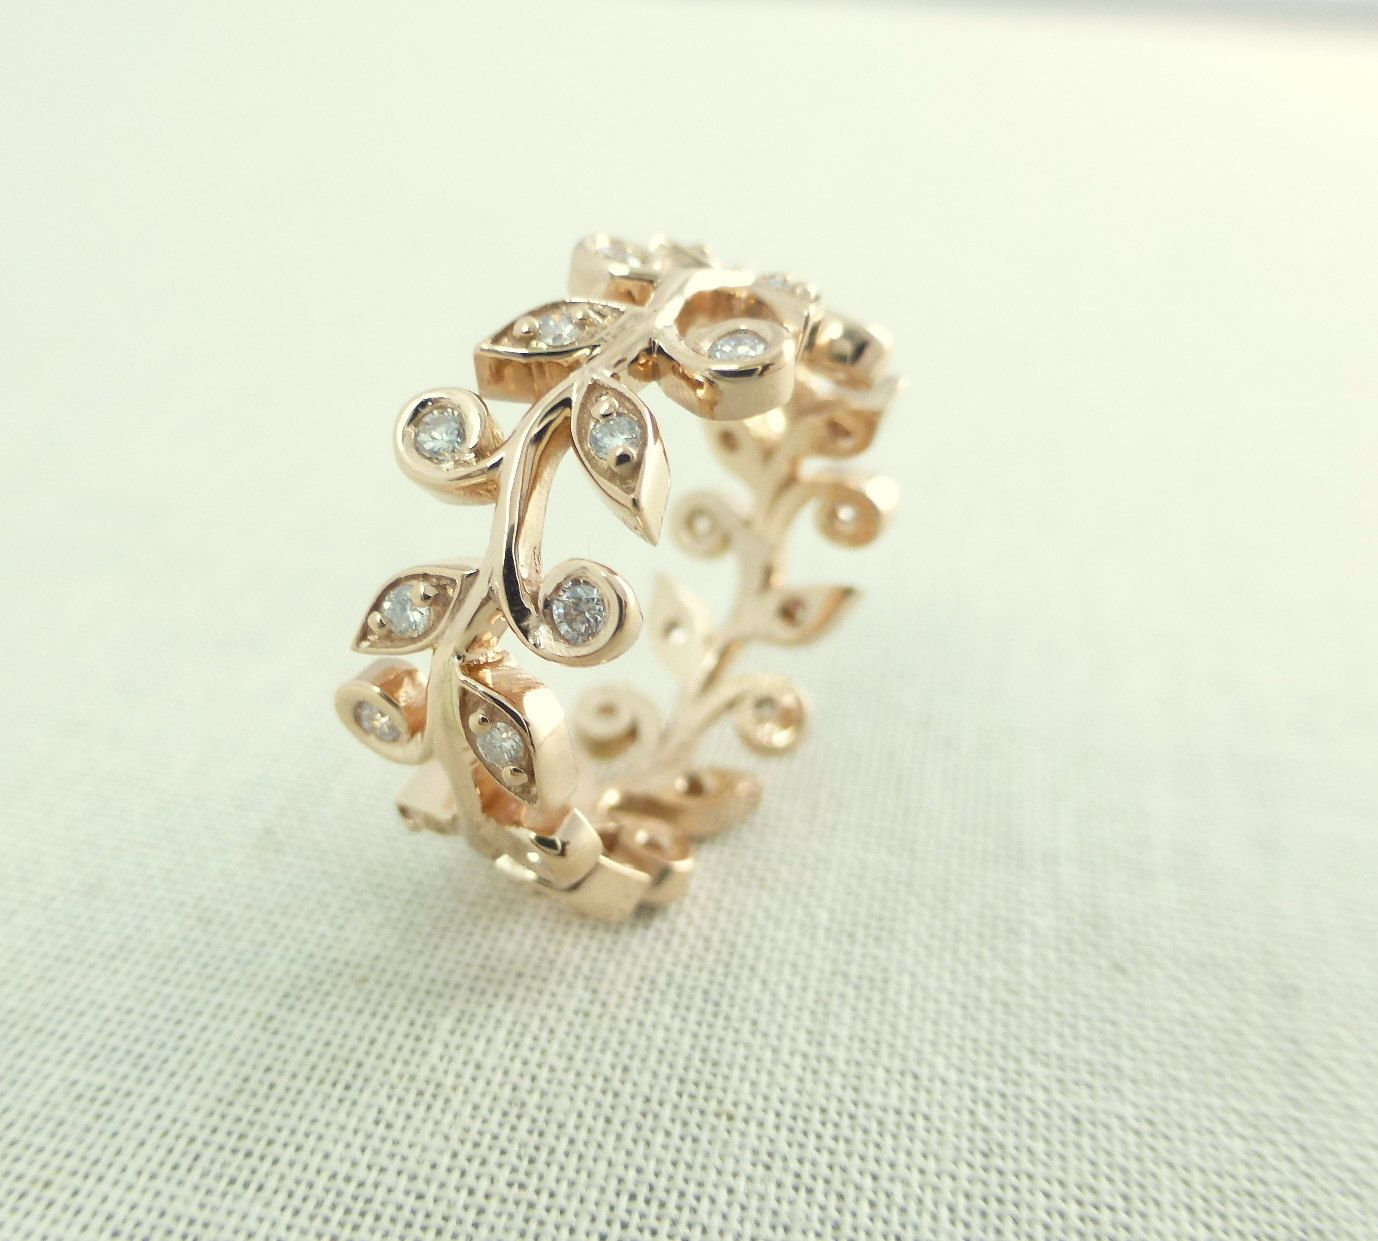 Leaf and diamond engagement ring. Wedding band with leaves